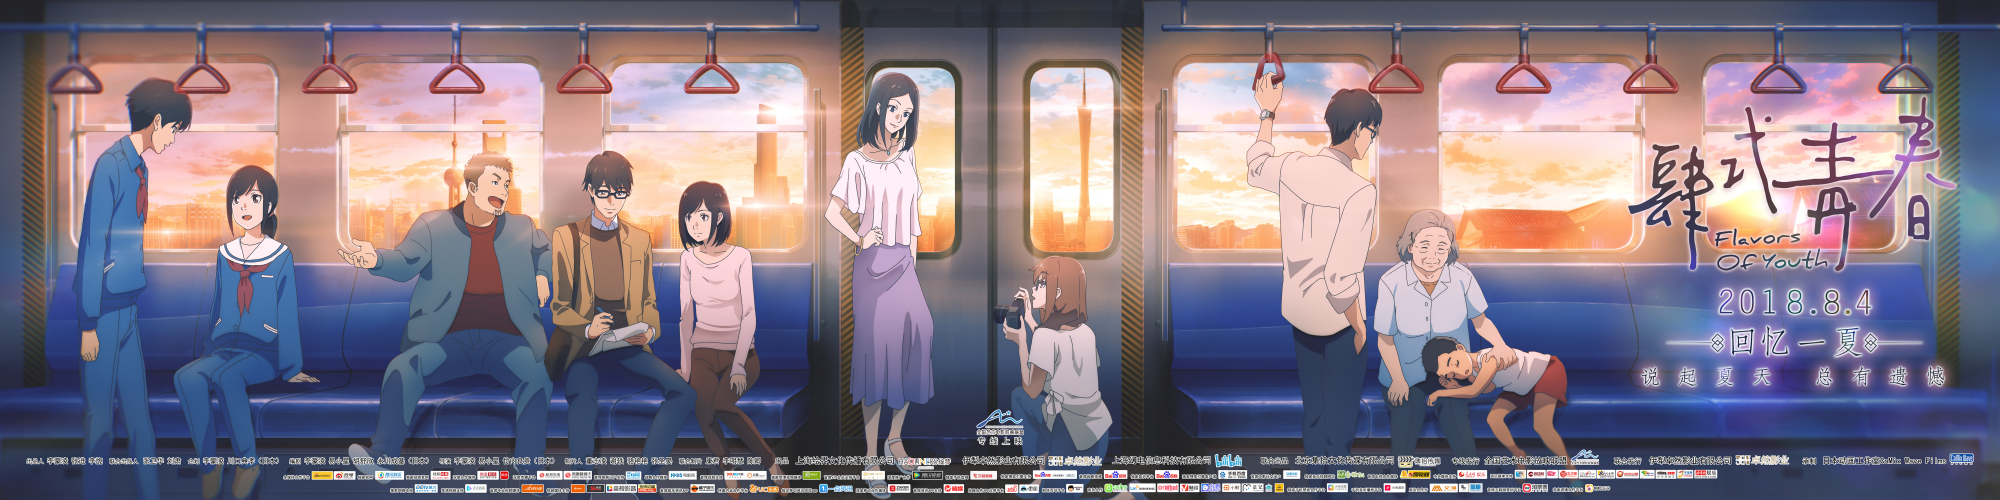 Image result for flavors of youth